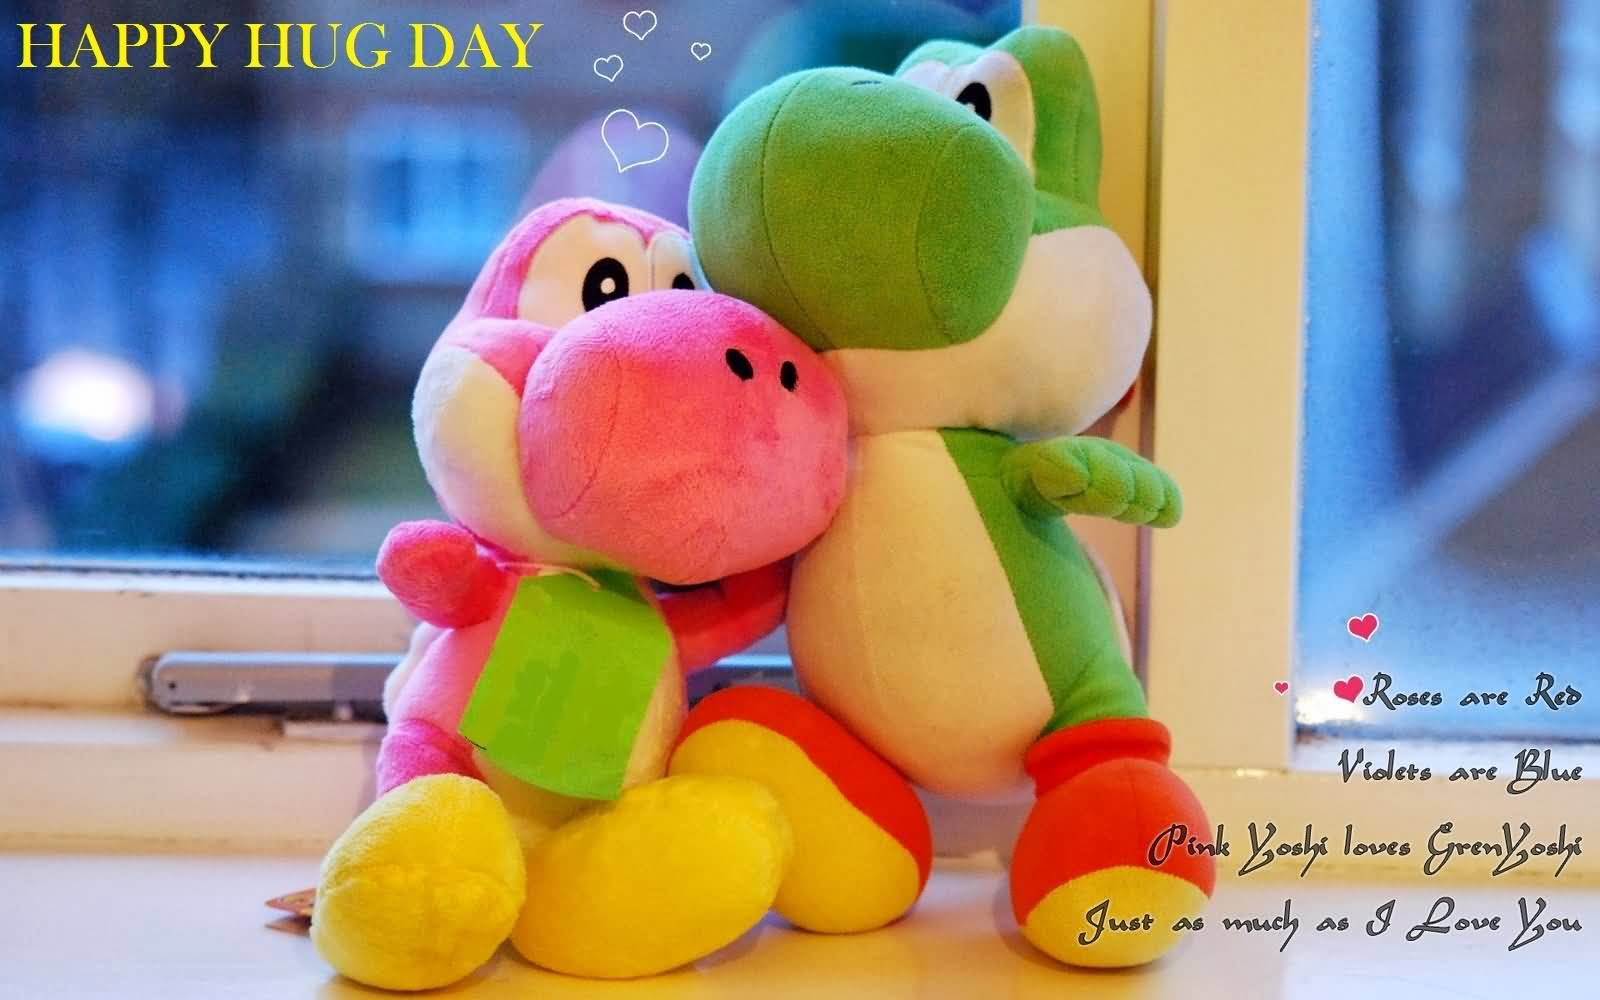 Happy Hug Day cute poem with wallpaper for your love